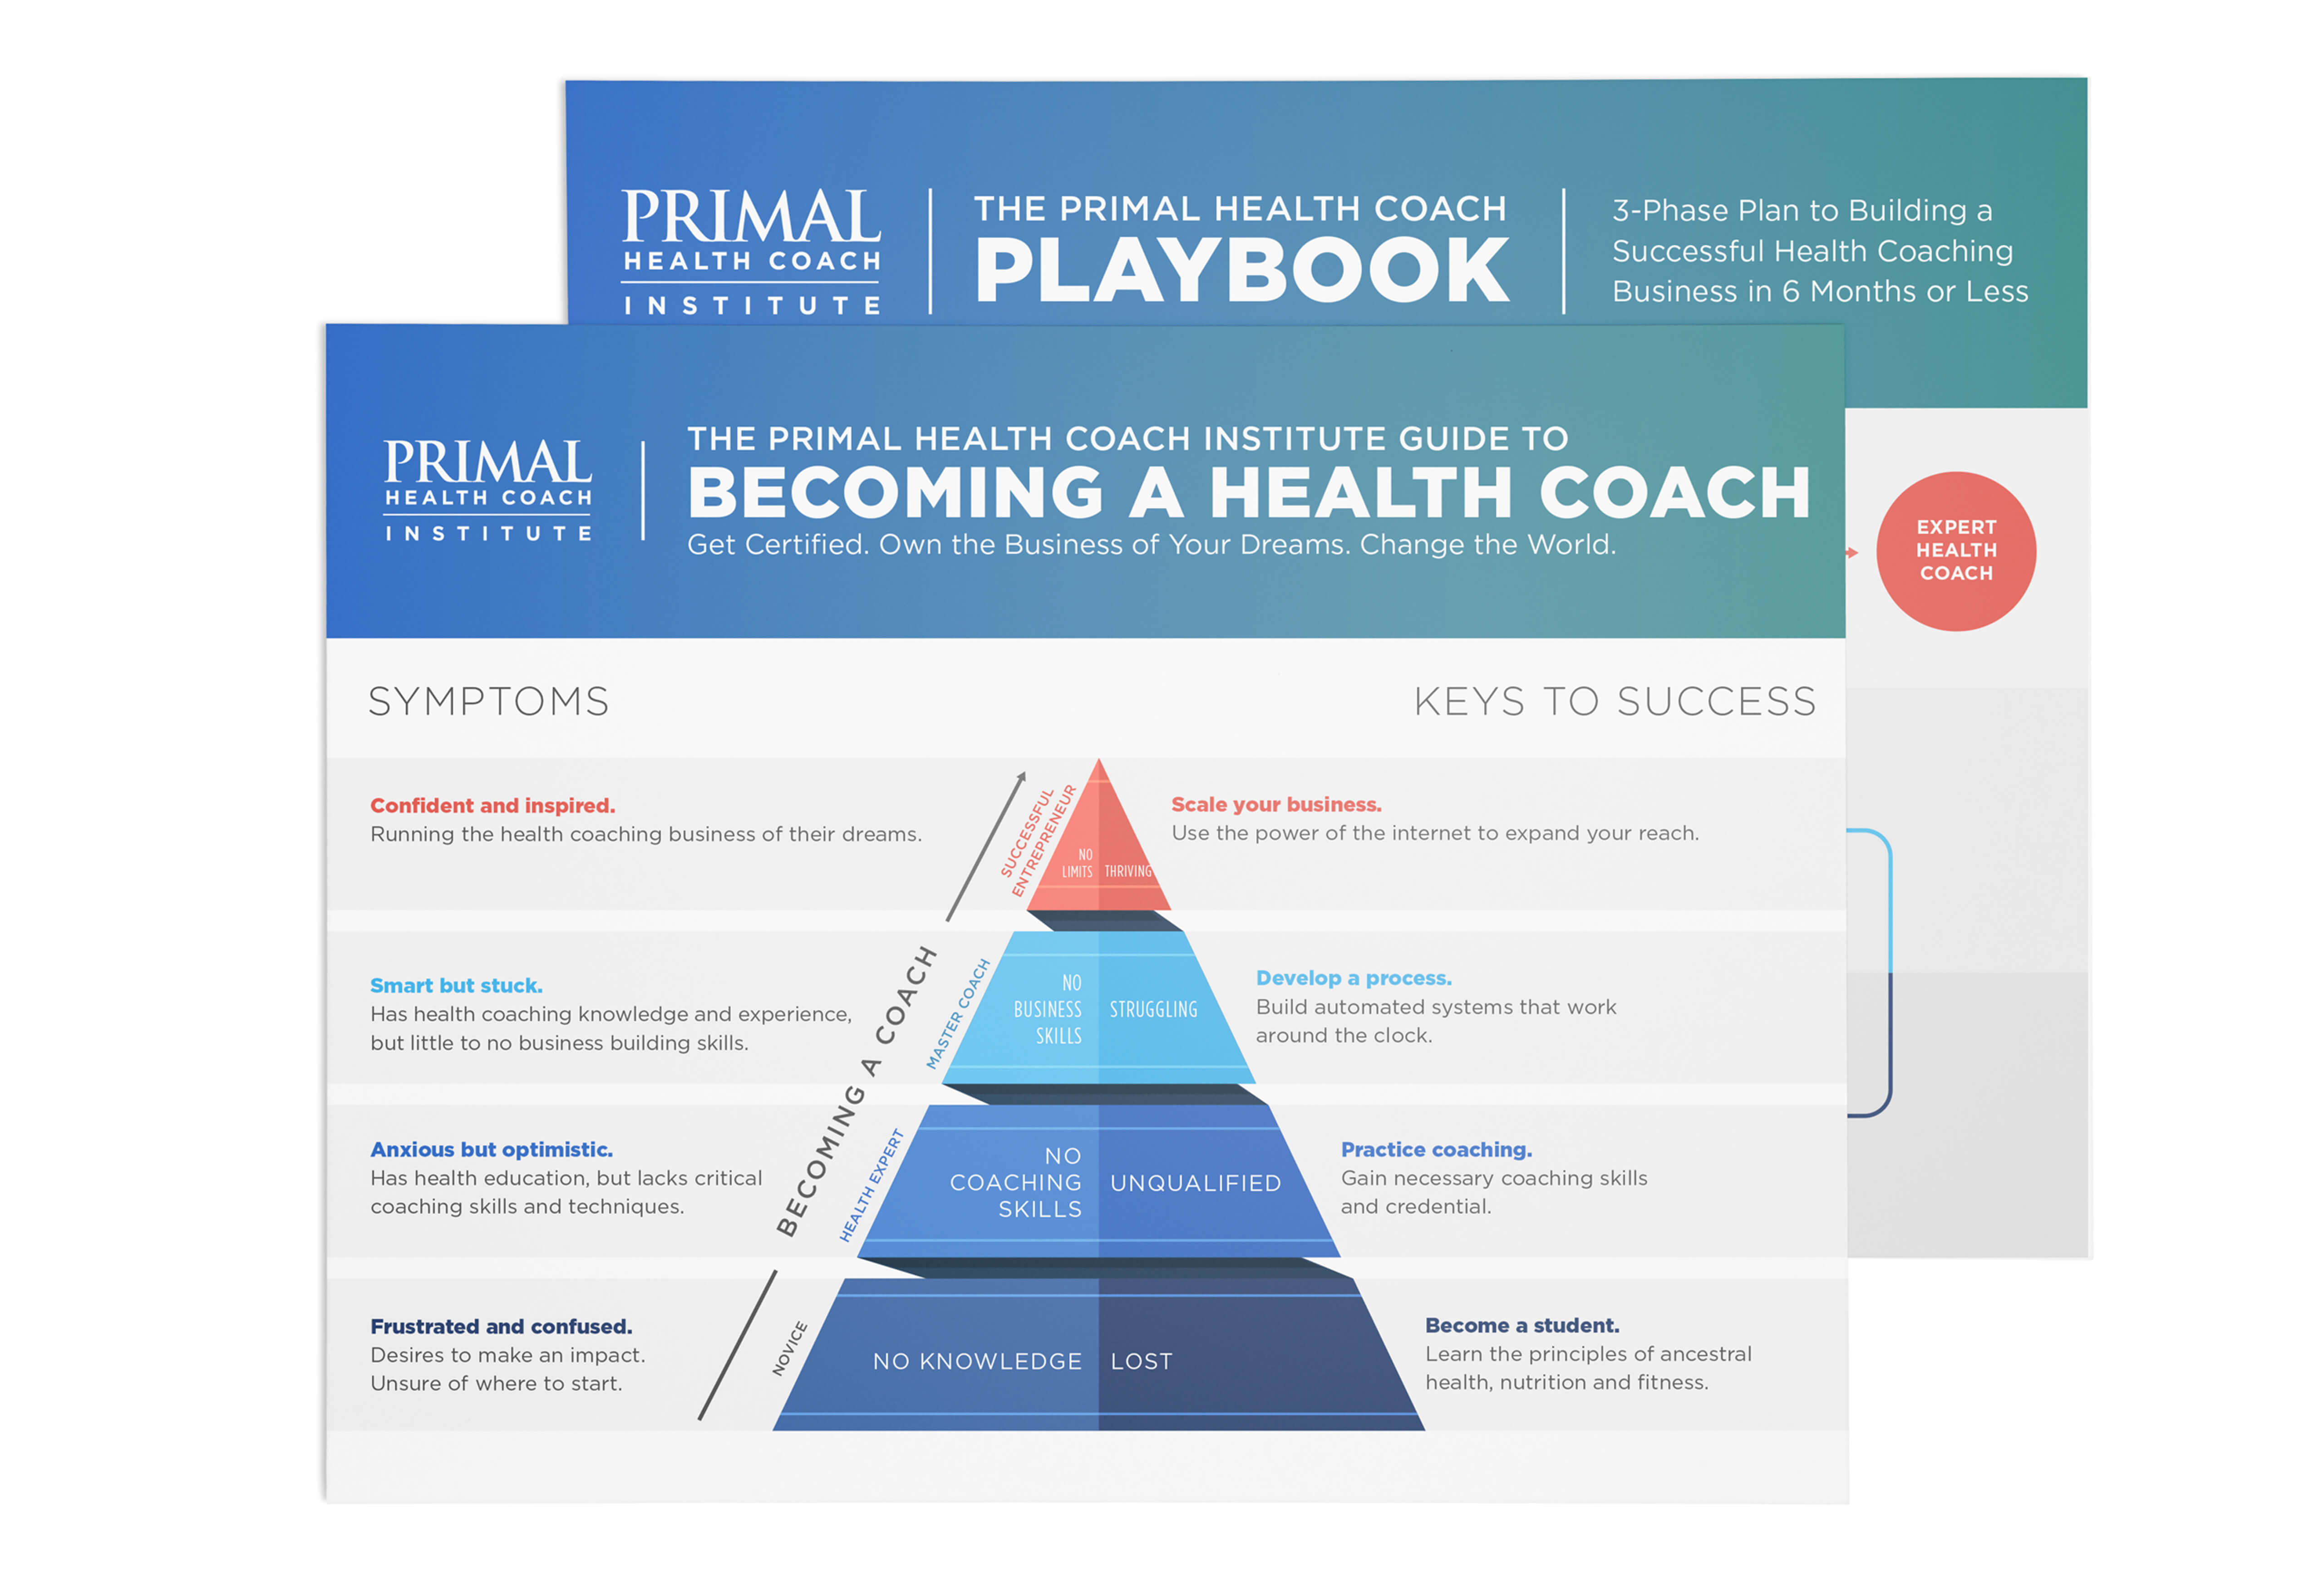 primal health coach institute card – becoming